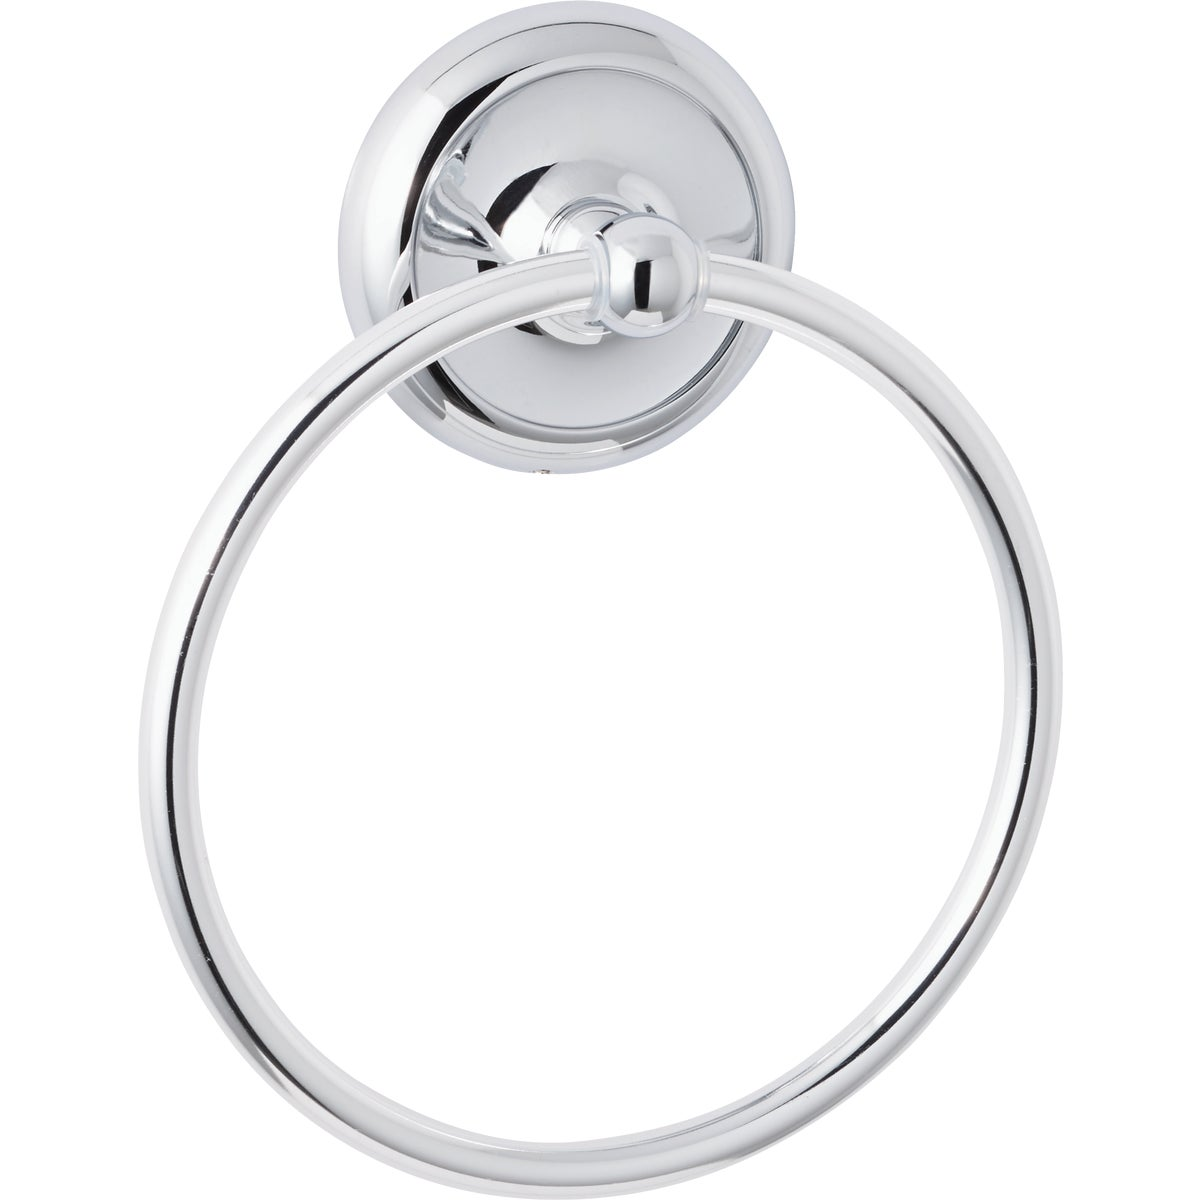 CHROME TOWEL RING - 456772 by Do it Best